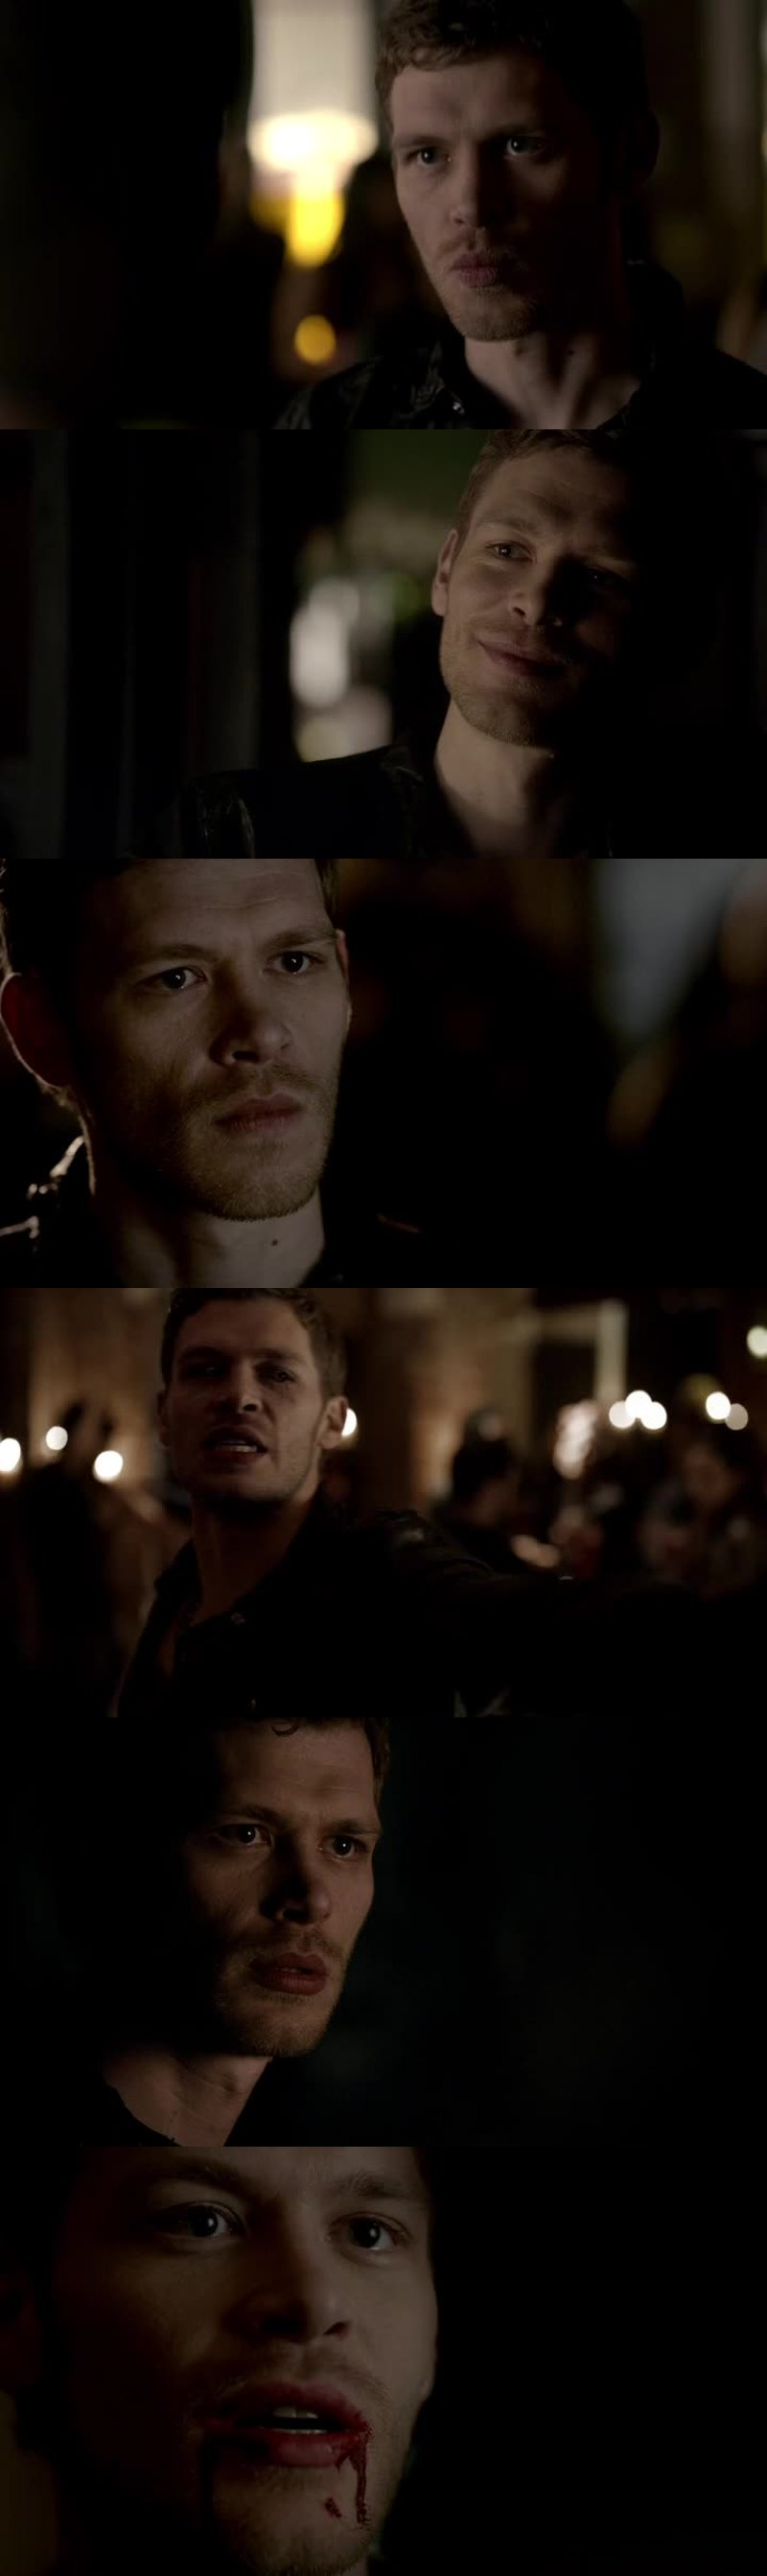 I love the Originals so much especially Klaus becaude even if he acts like he's mean and stuff well deep down he is sensitive